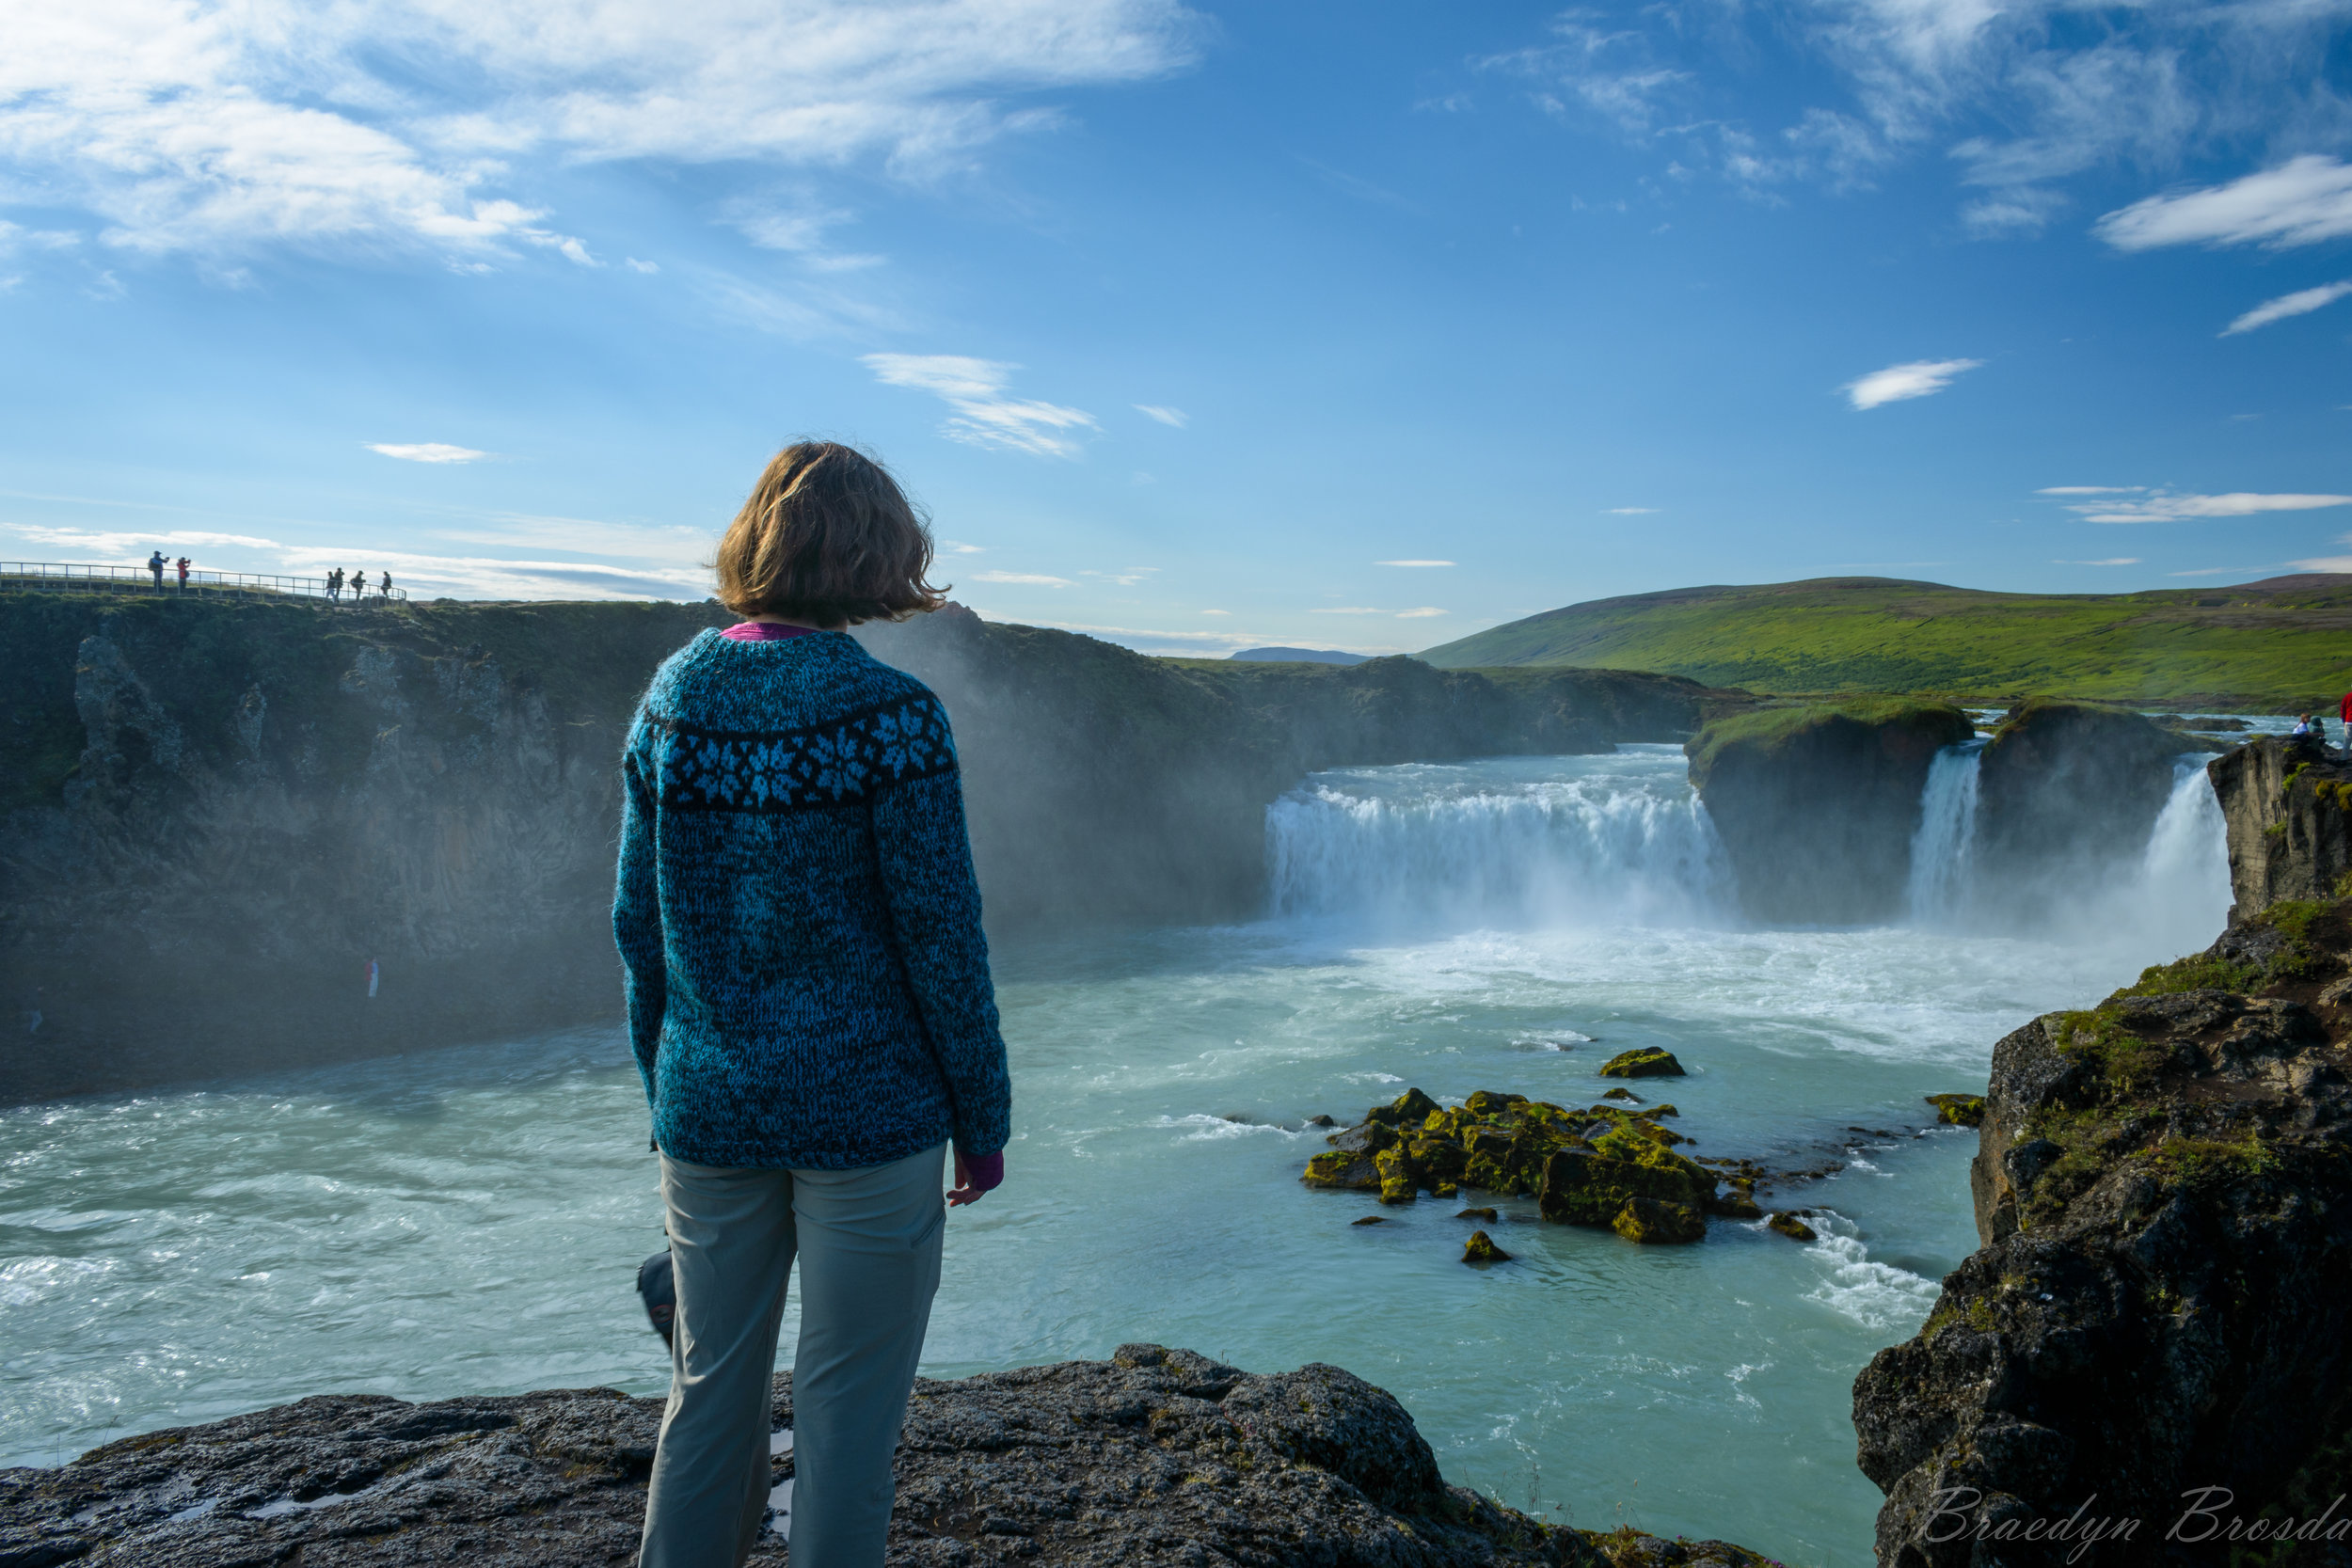 Sarah and her Icelandic sweater in front of an Icelandic waterfall